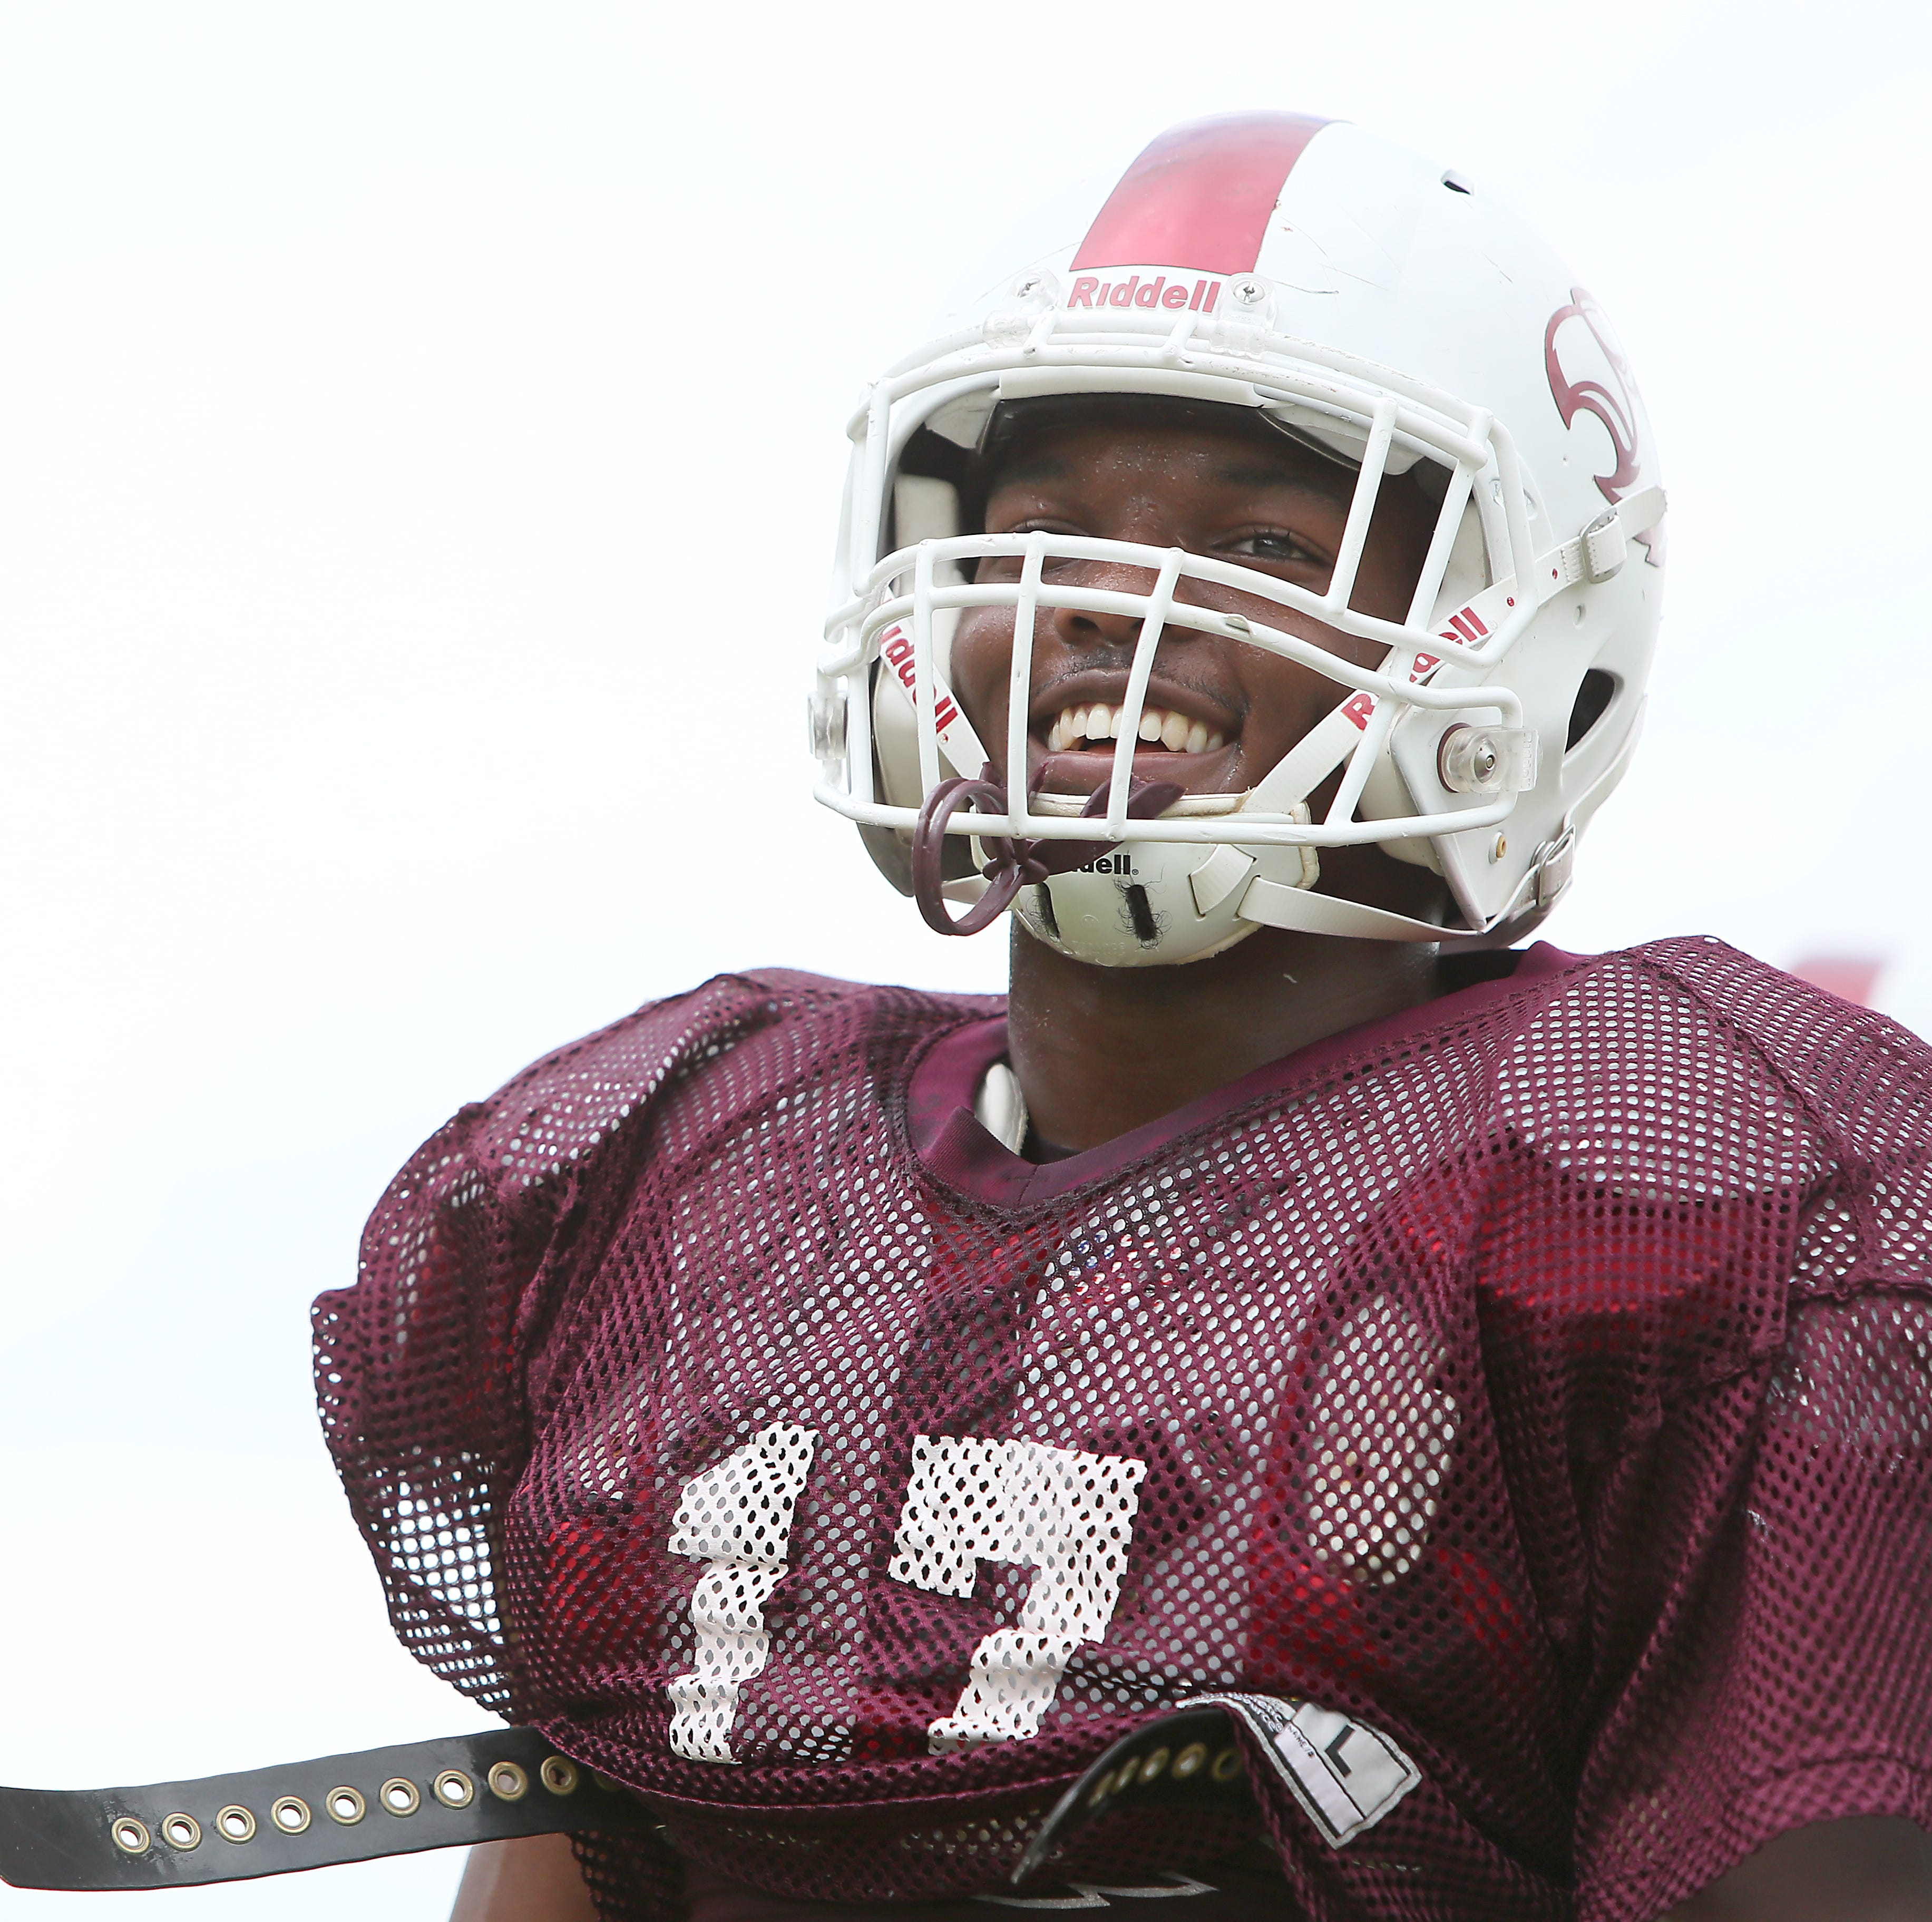 'It's been a whirlwind': Focus intensifies on Nakobe Dean as signing day nears